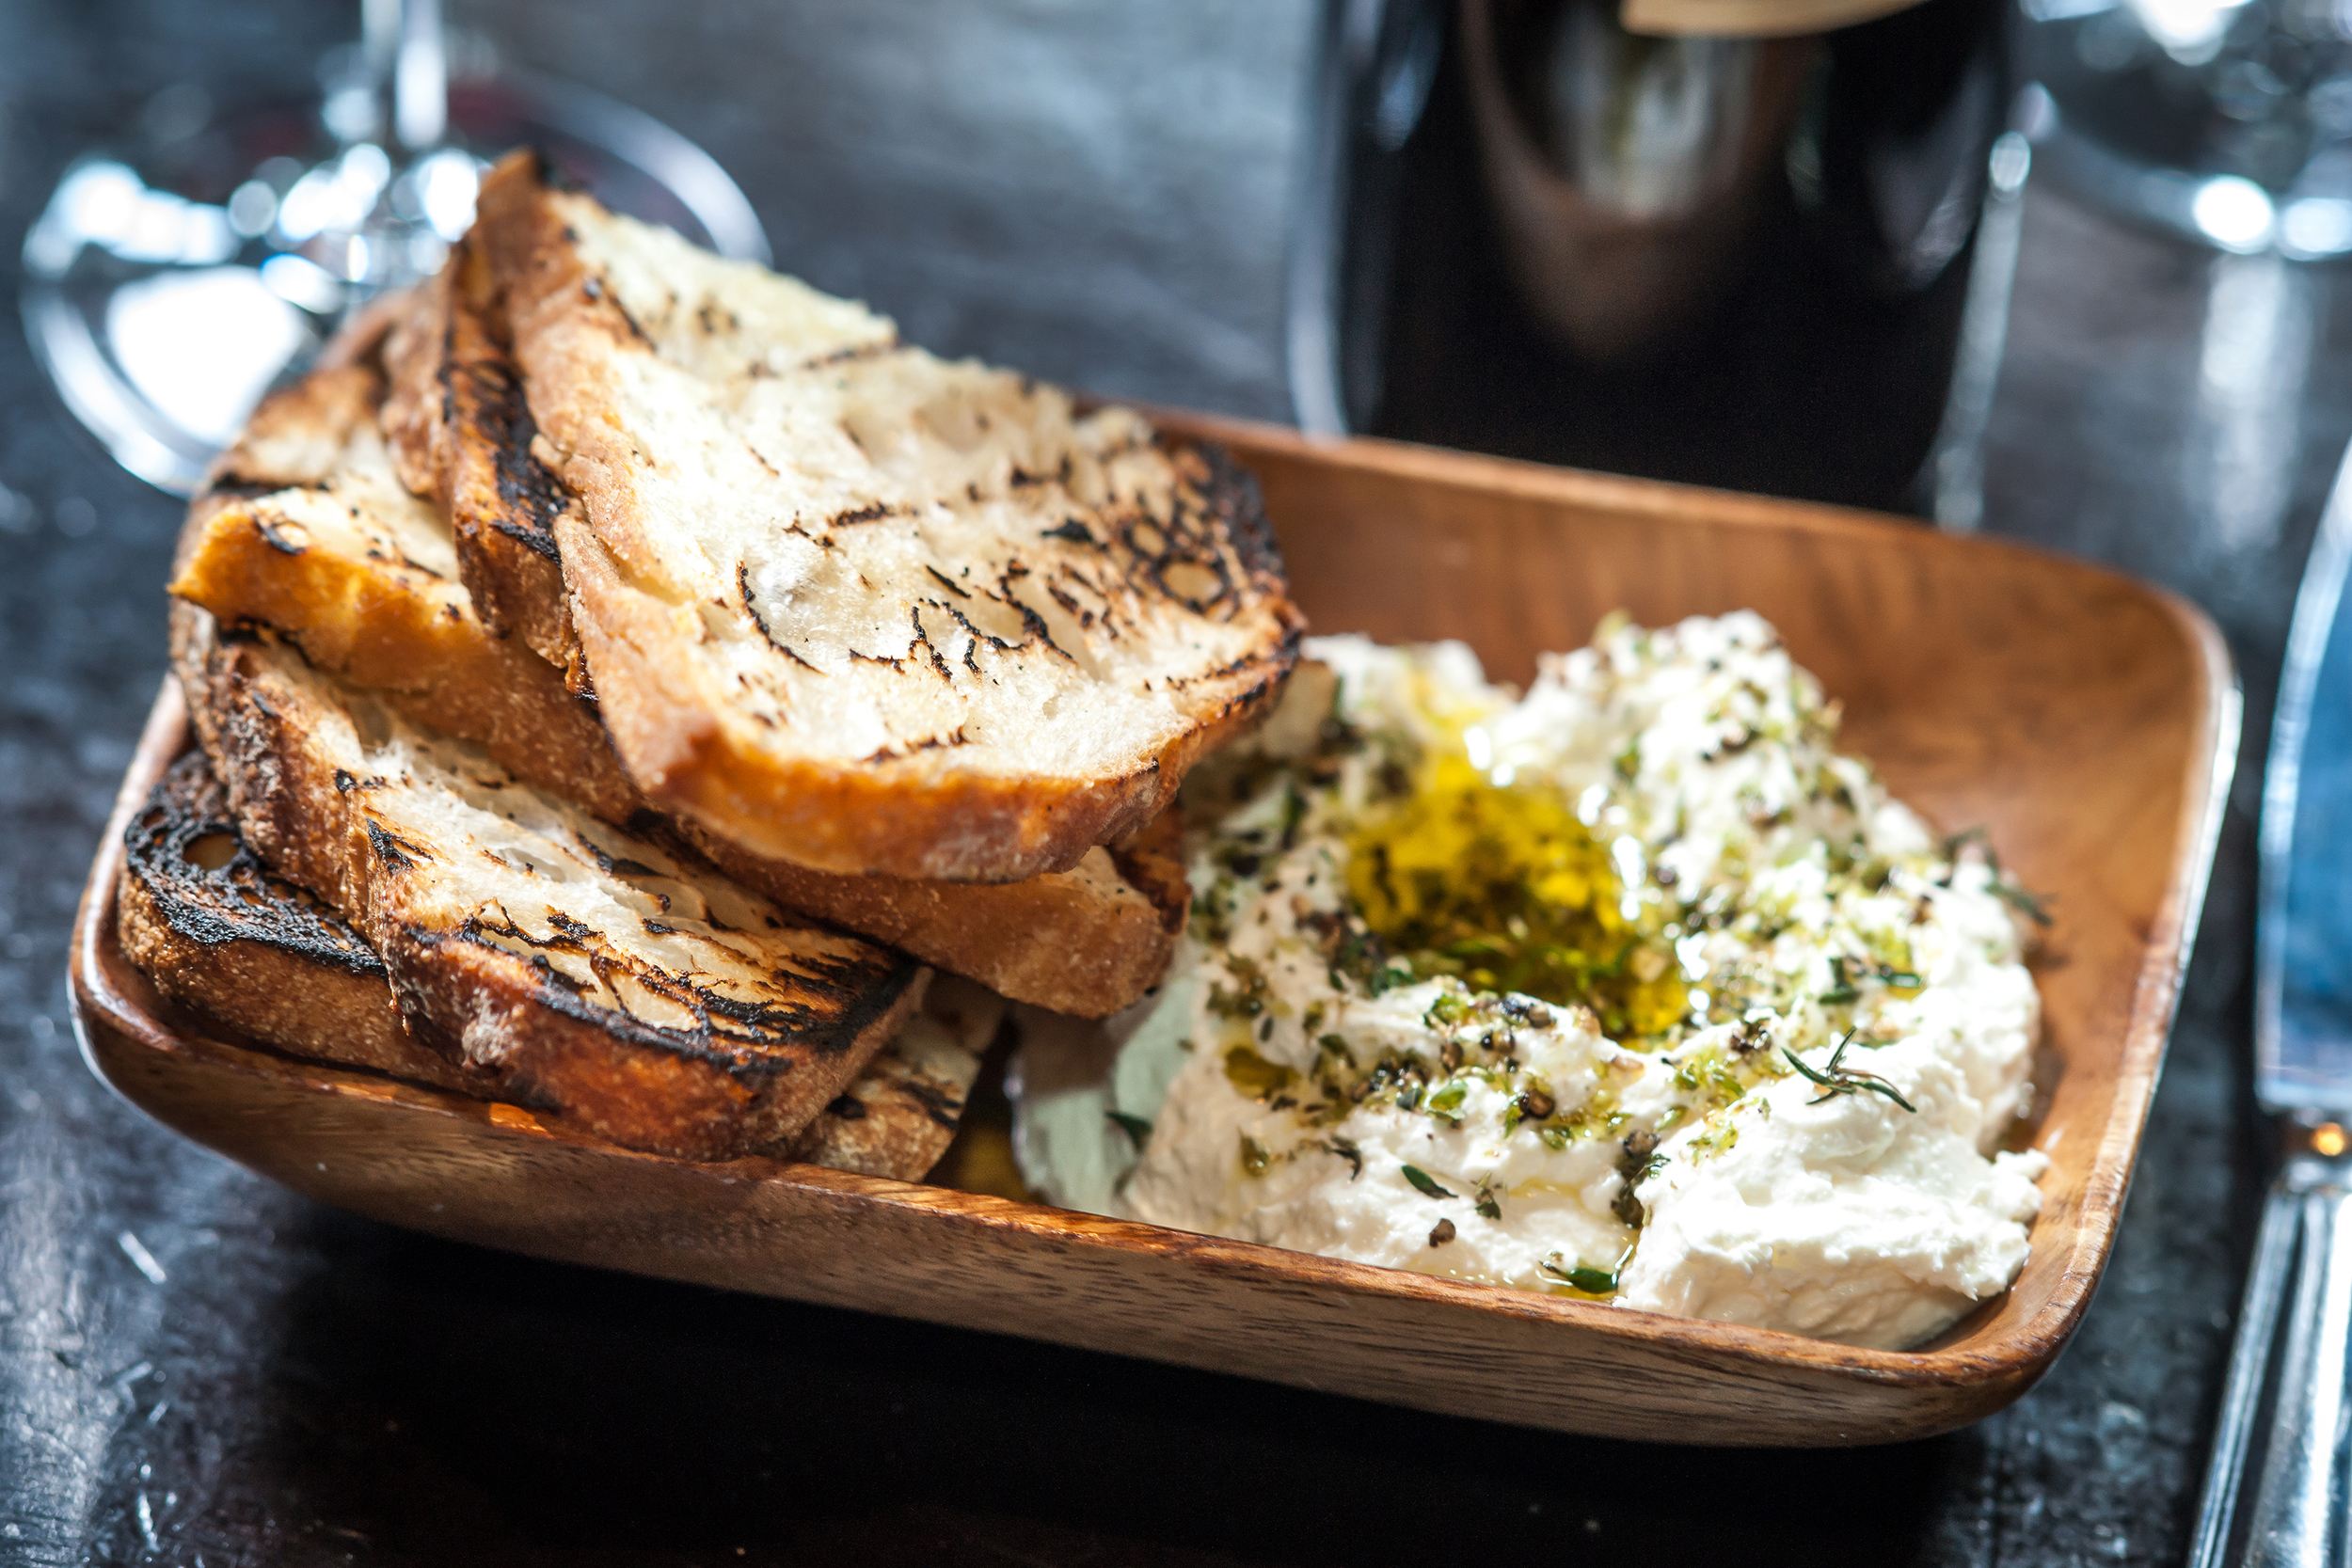 Sheep's Milk Ricotta & Grilled Bread